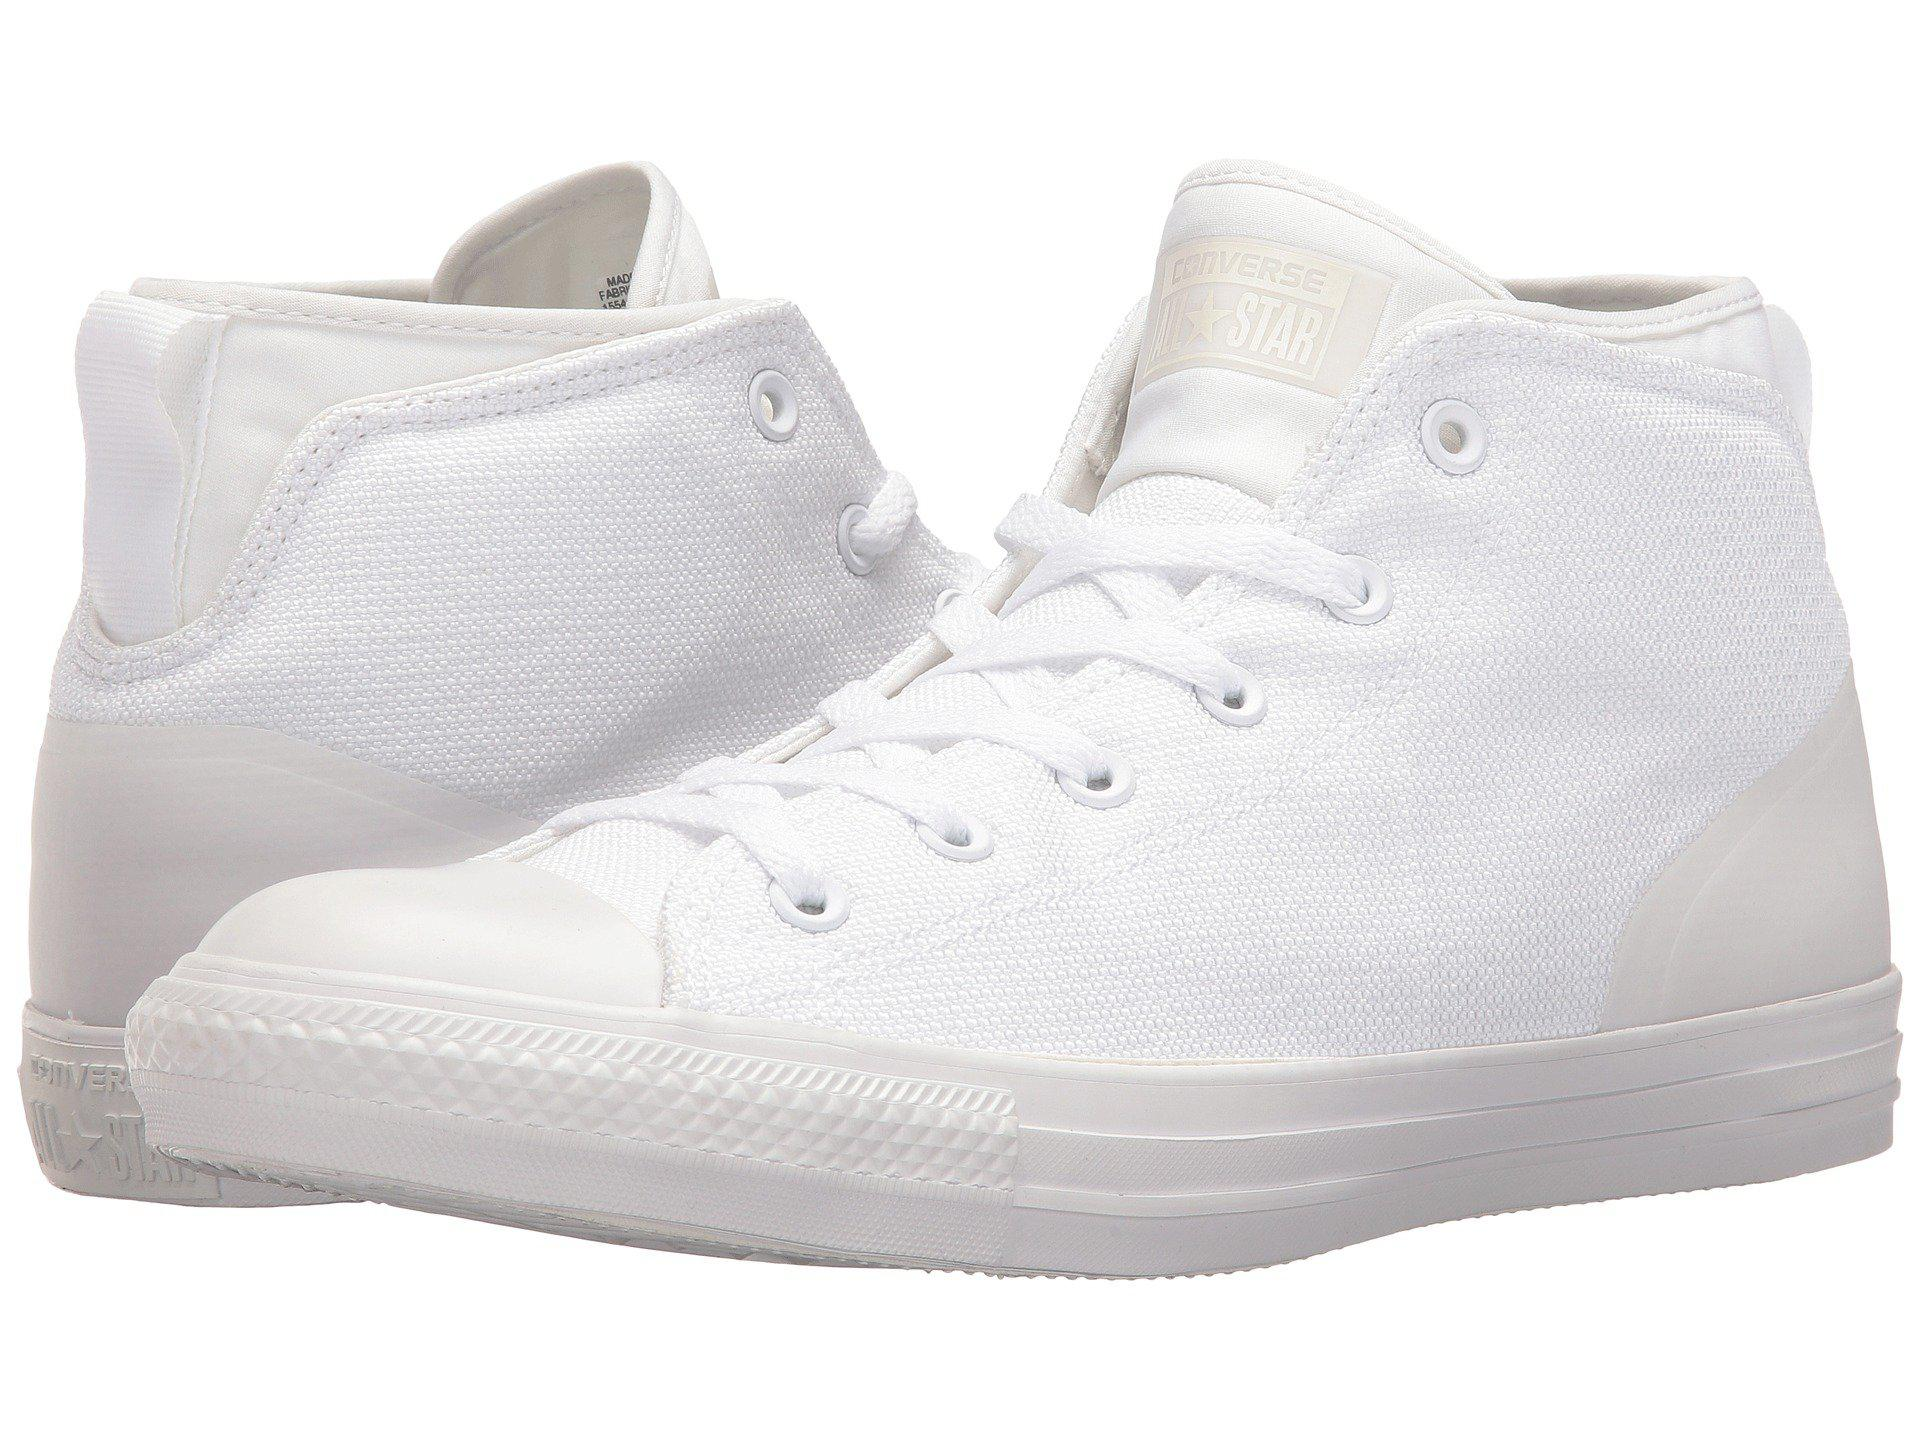 76a296d7bd60 Converse. Women s White Chuck Taylor® All Star® Syde Street Textile Mid